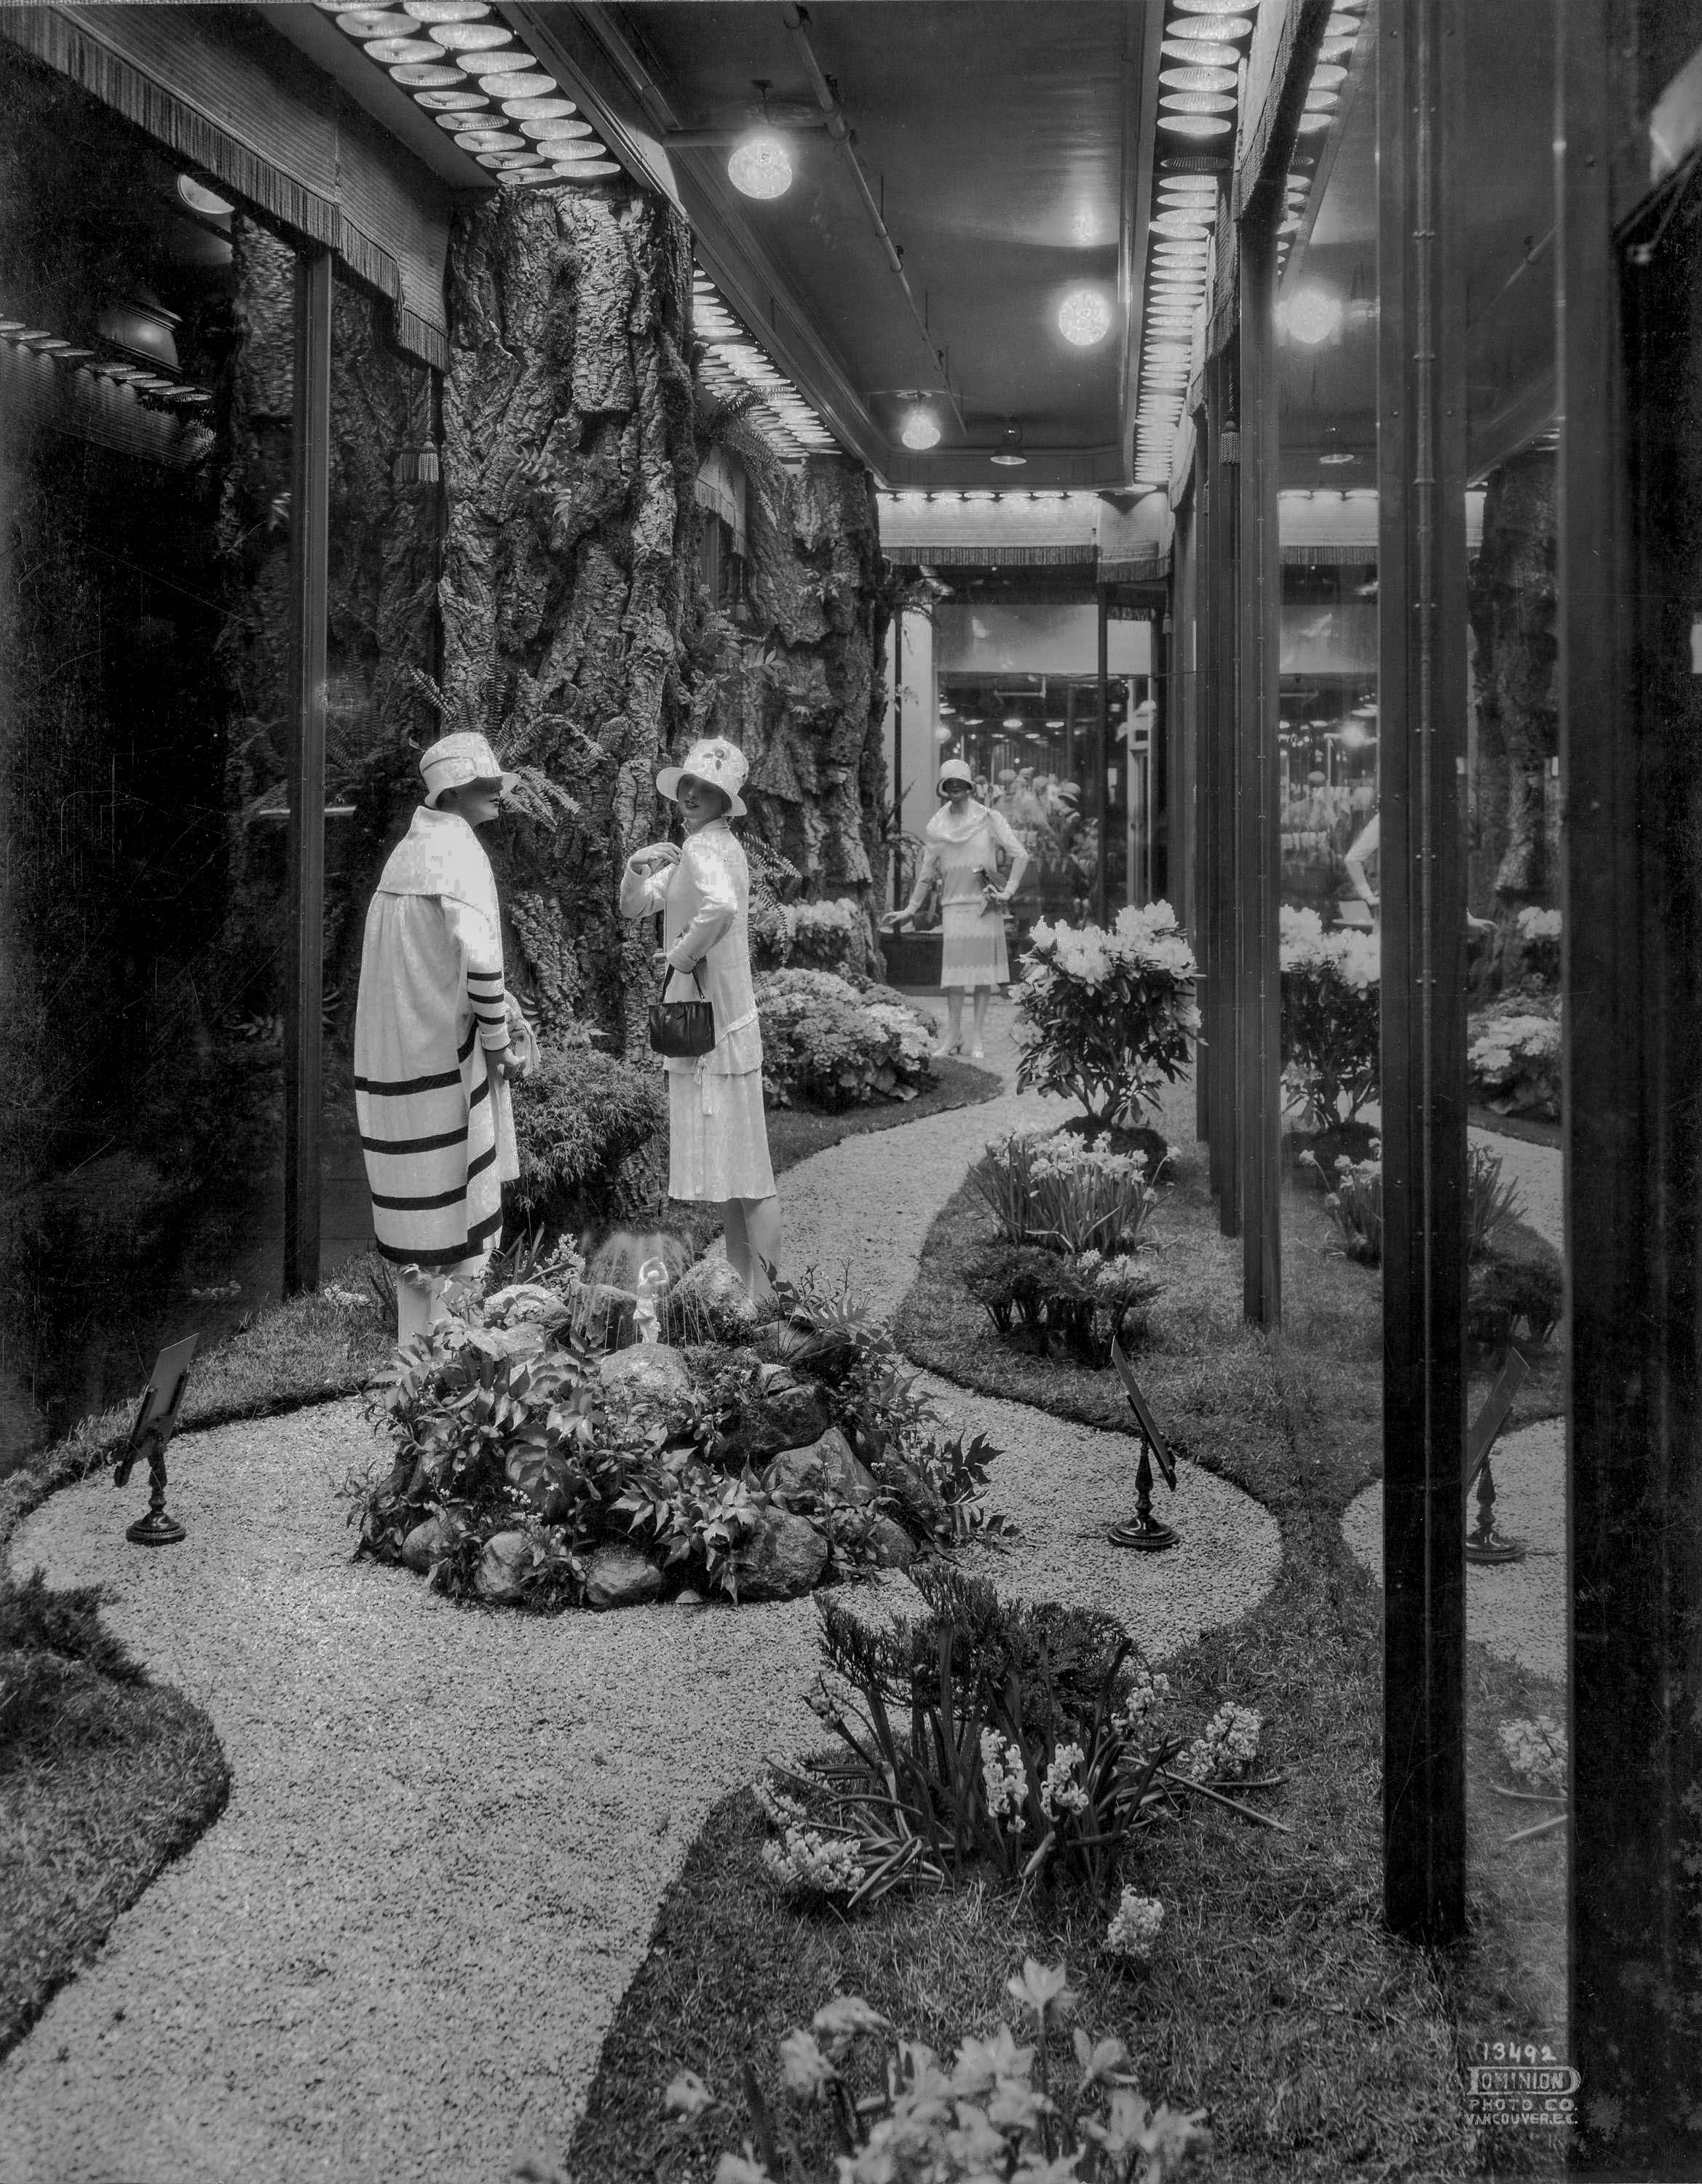 CVA 1495-36 - [Spencer's Department Store window display] 193- Dominion Photo